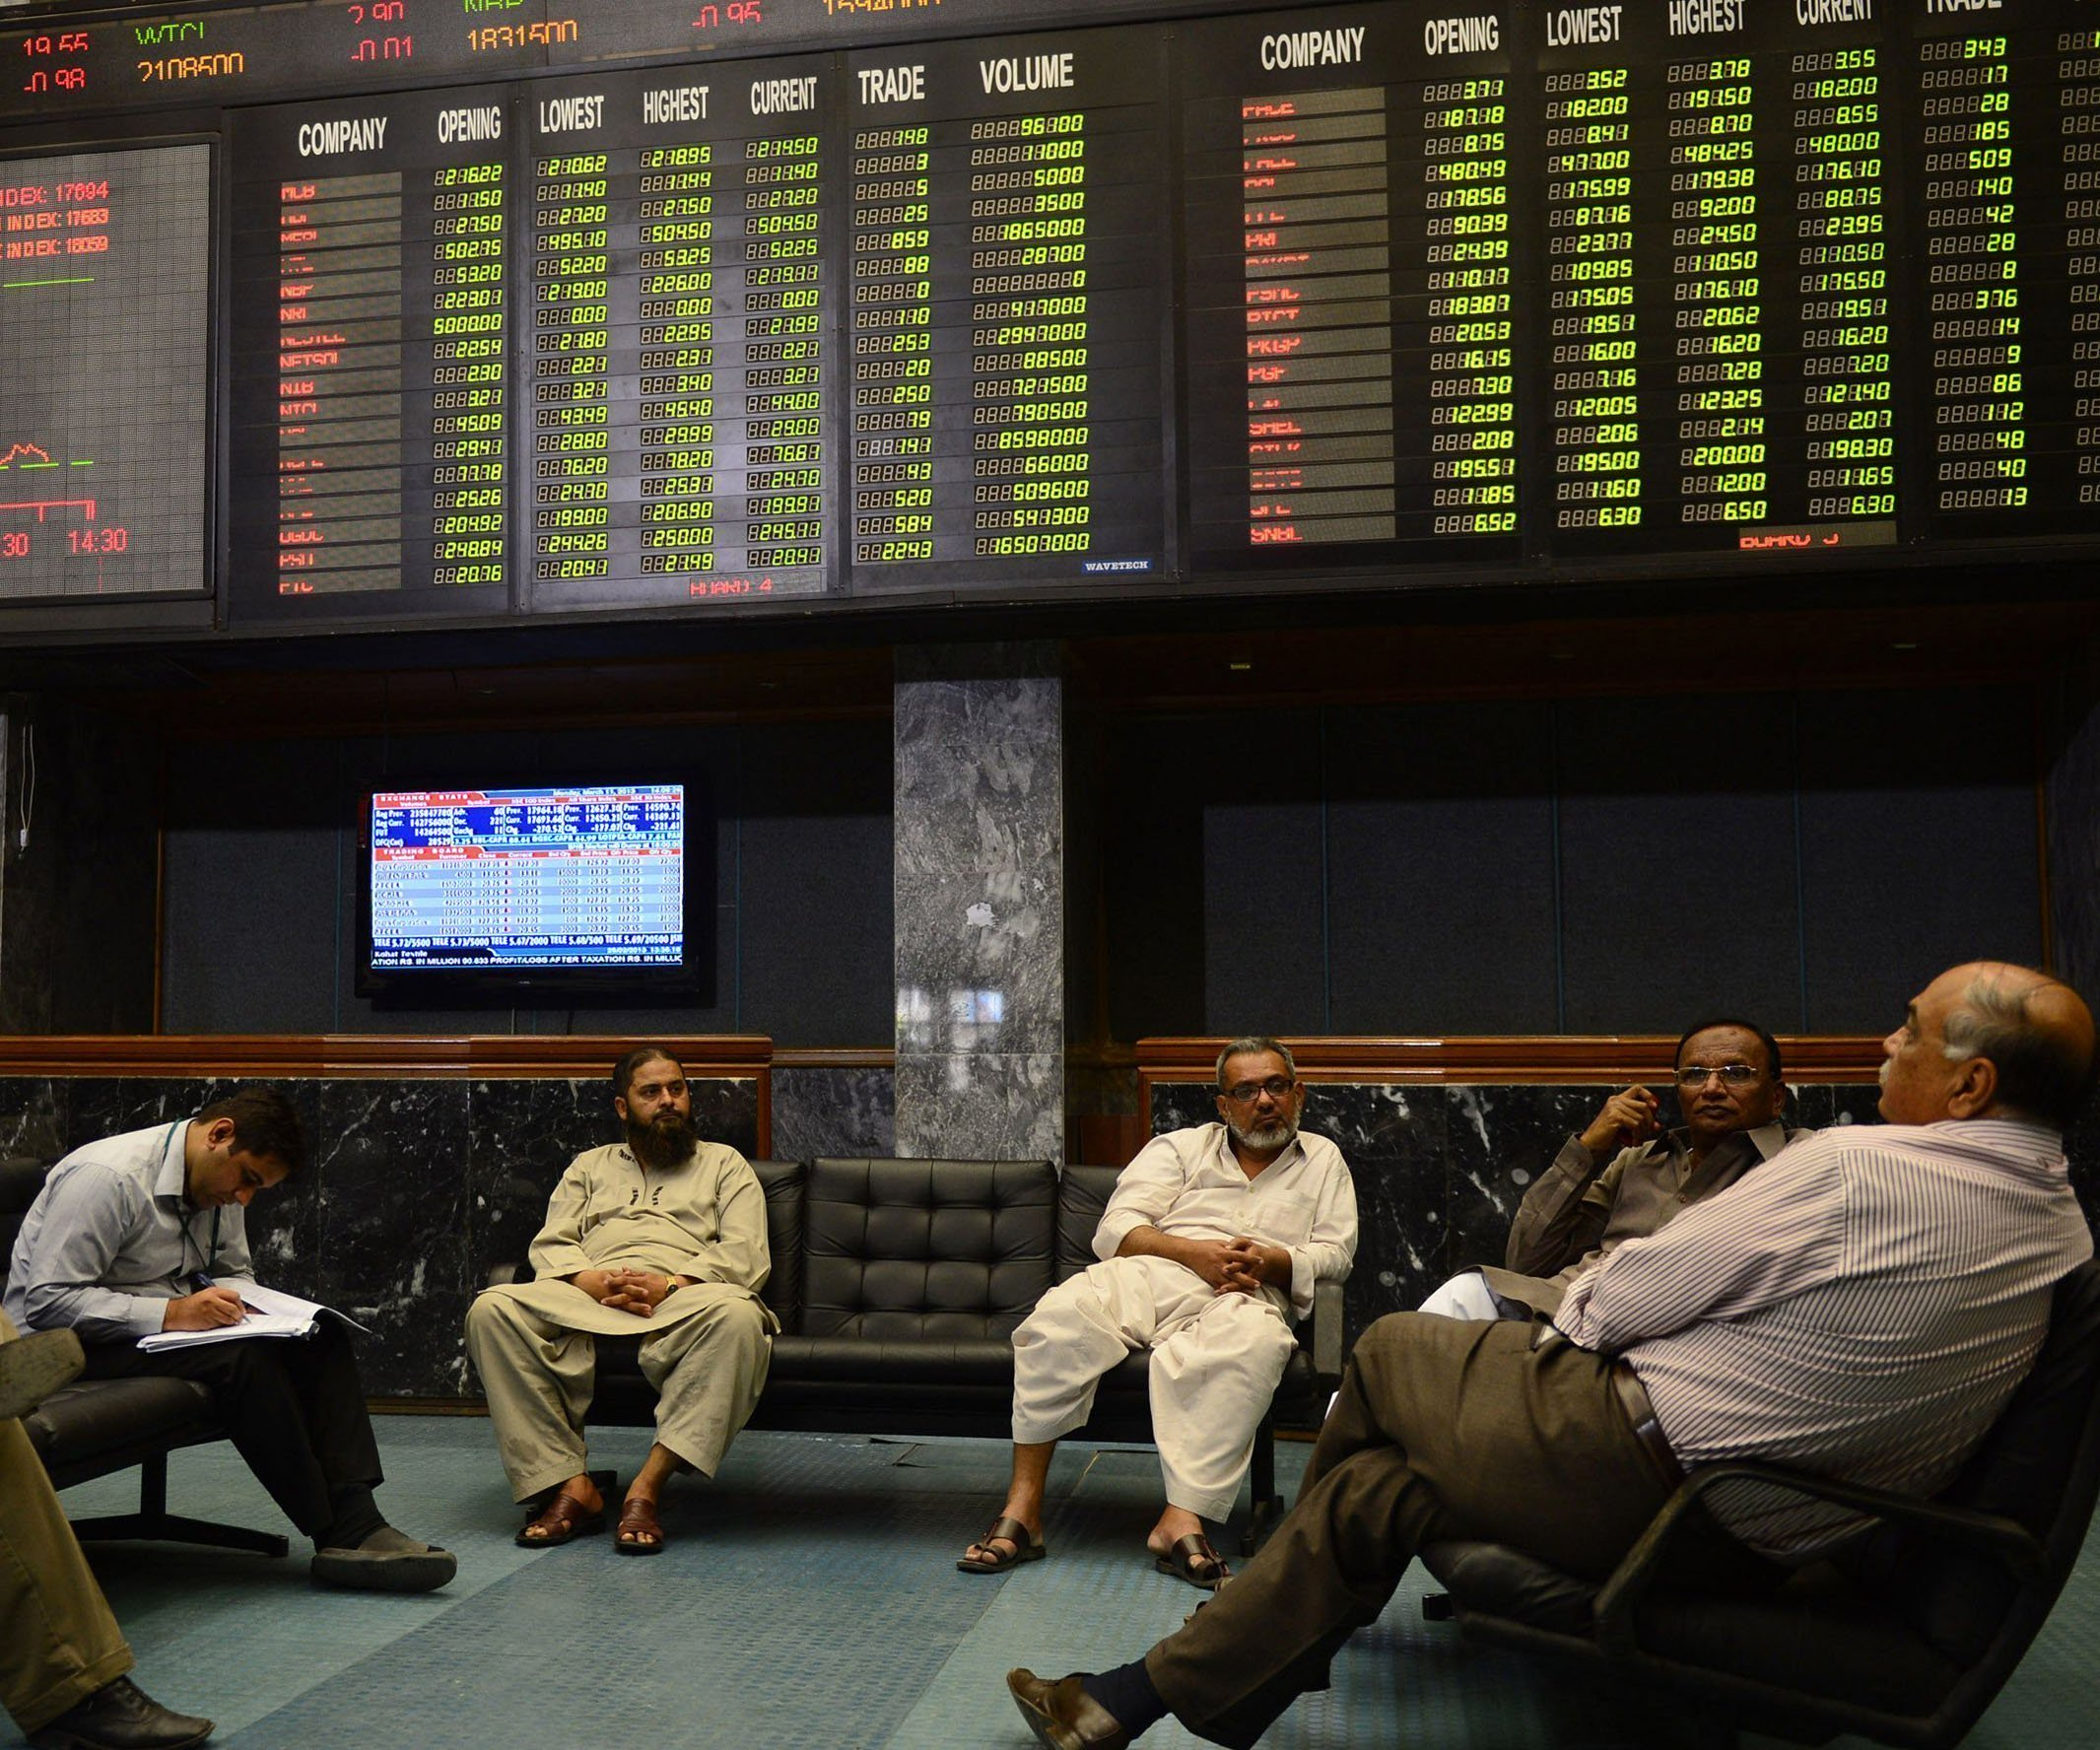 benchmark index gains 203 43 points to settle at 34 008 33 photo afp